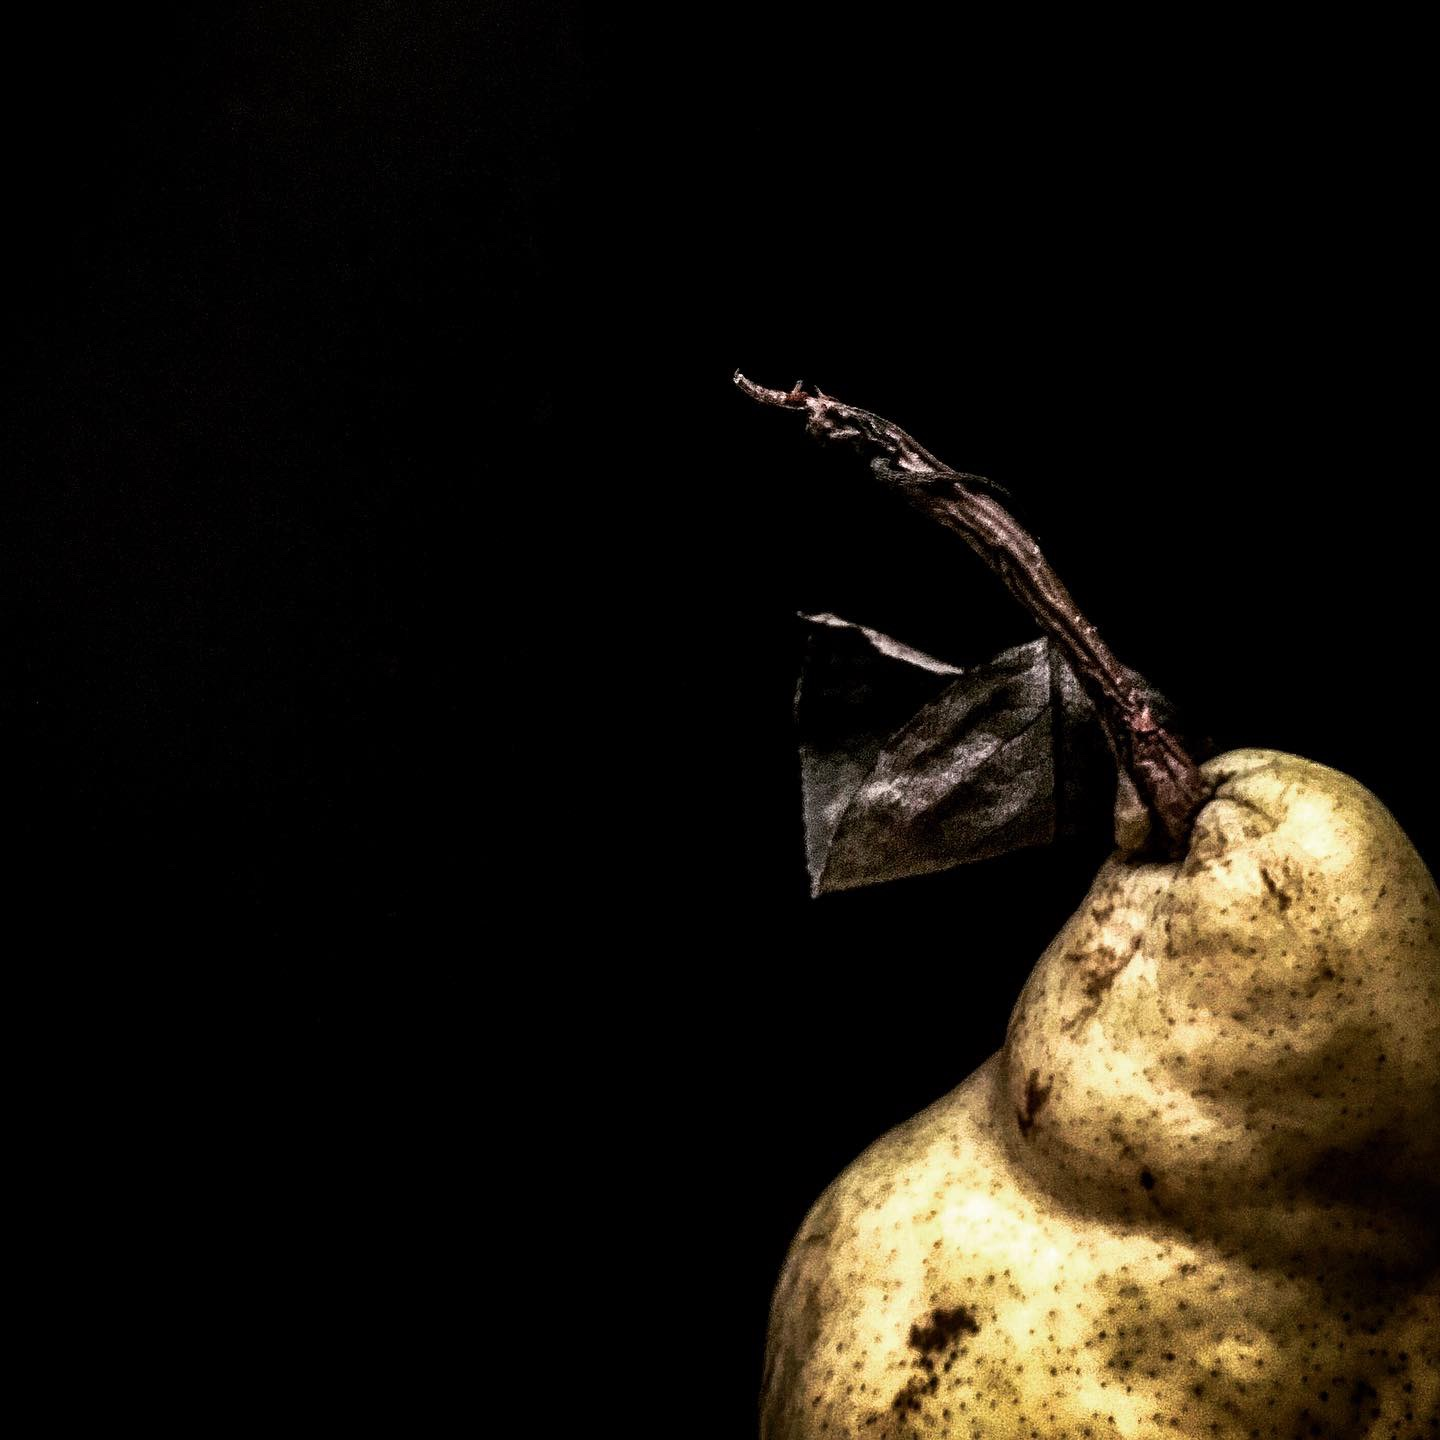 PEAR ON METAL CLOSE UP.JPG